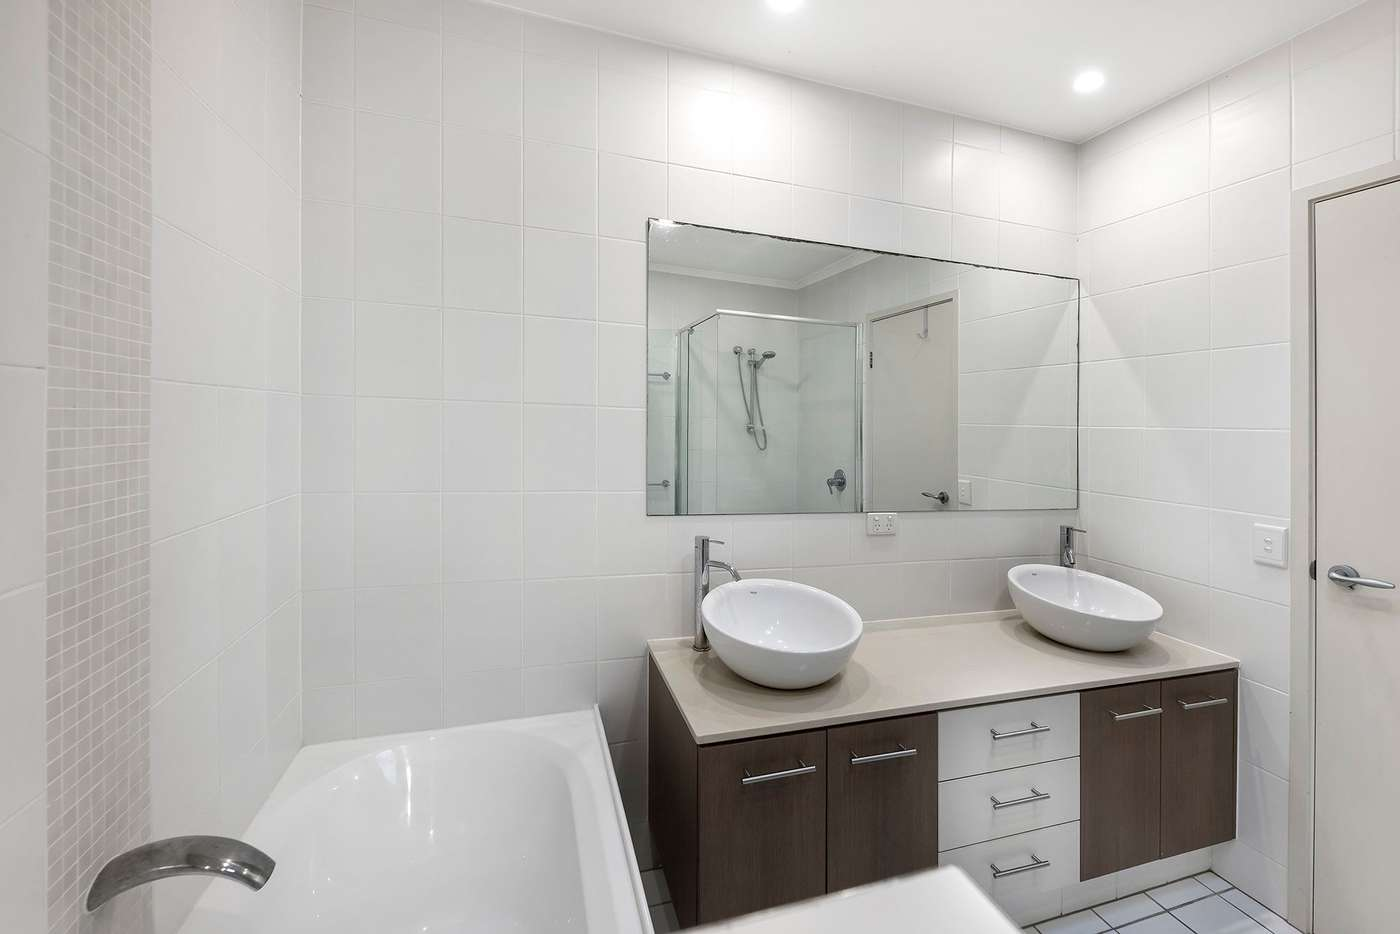 Sixth view of Homely townhouse listing, 16 Moores Crescent, Varsity Lakes QLD 4227